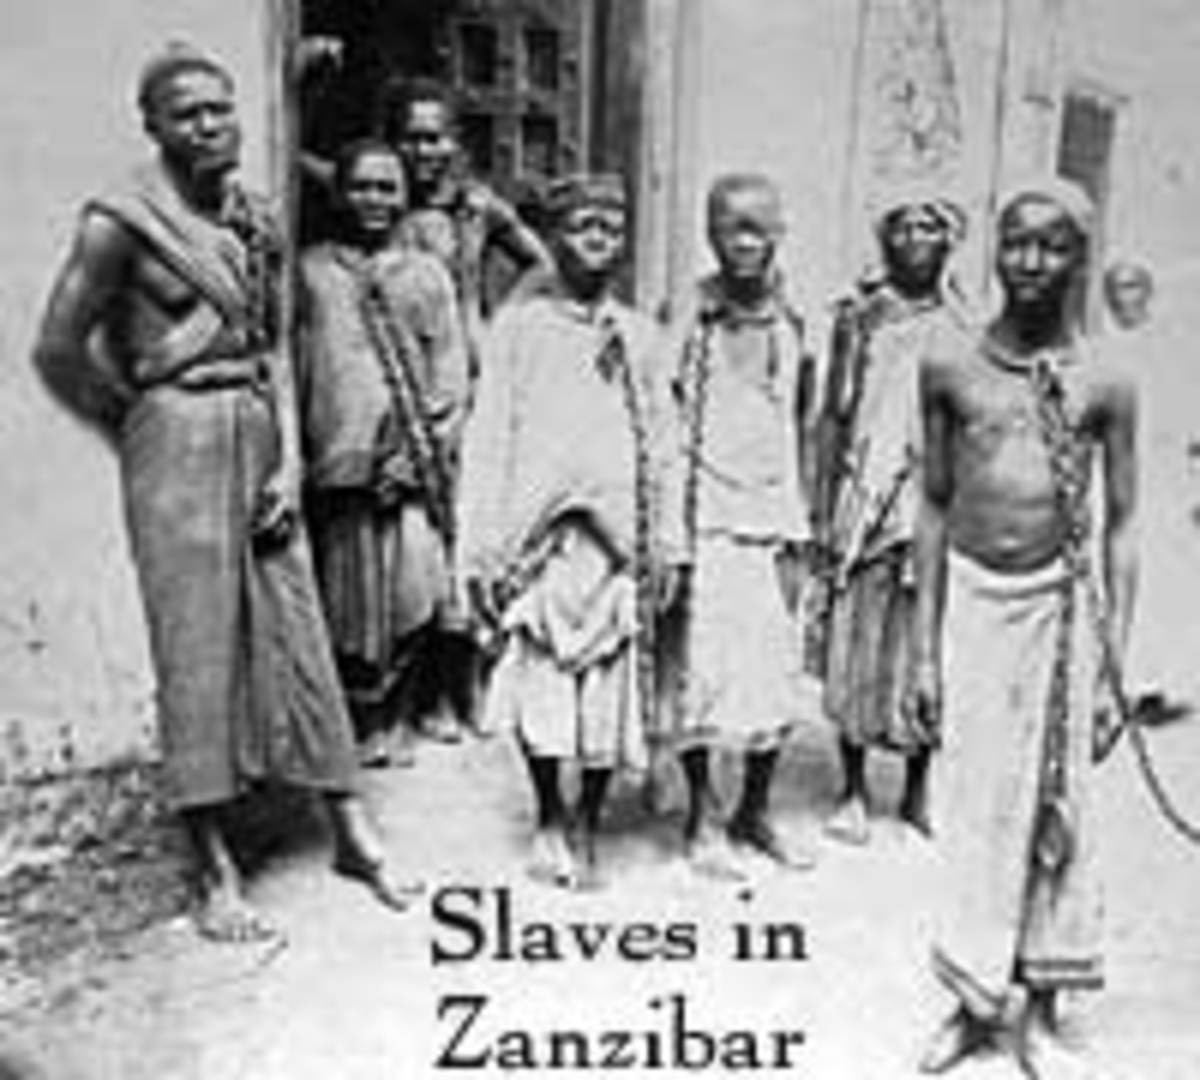 Slaves who were enslaved in East Africa by the rulers of Zanzibar